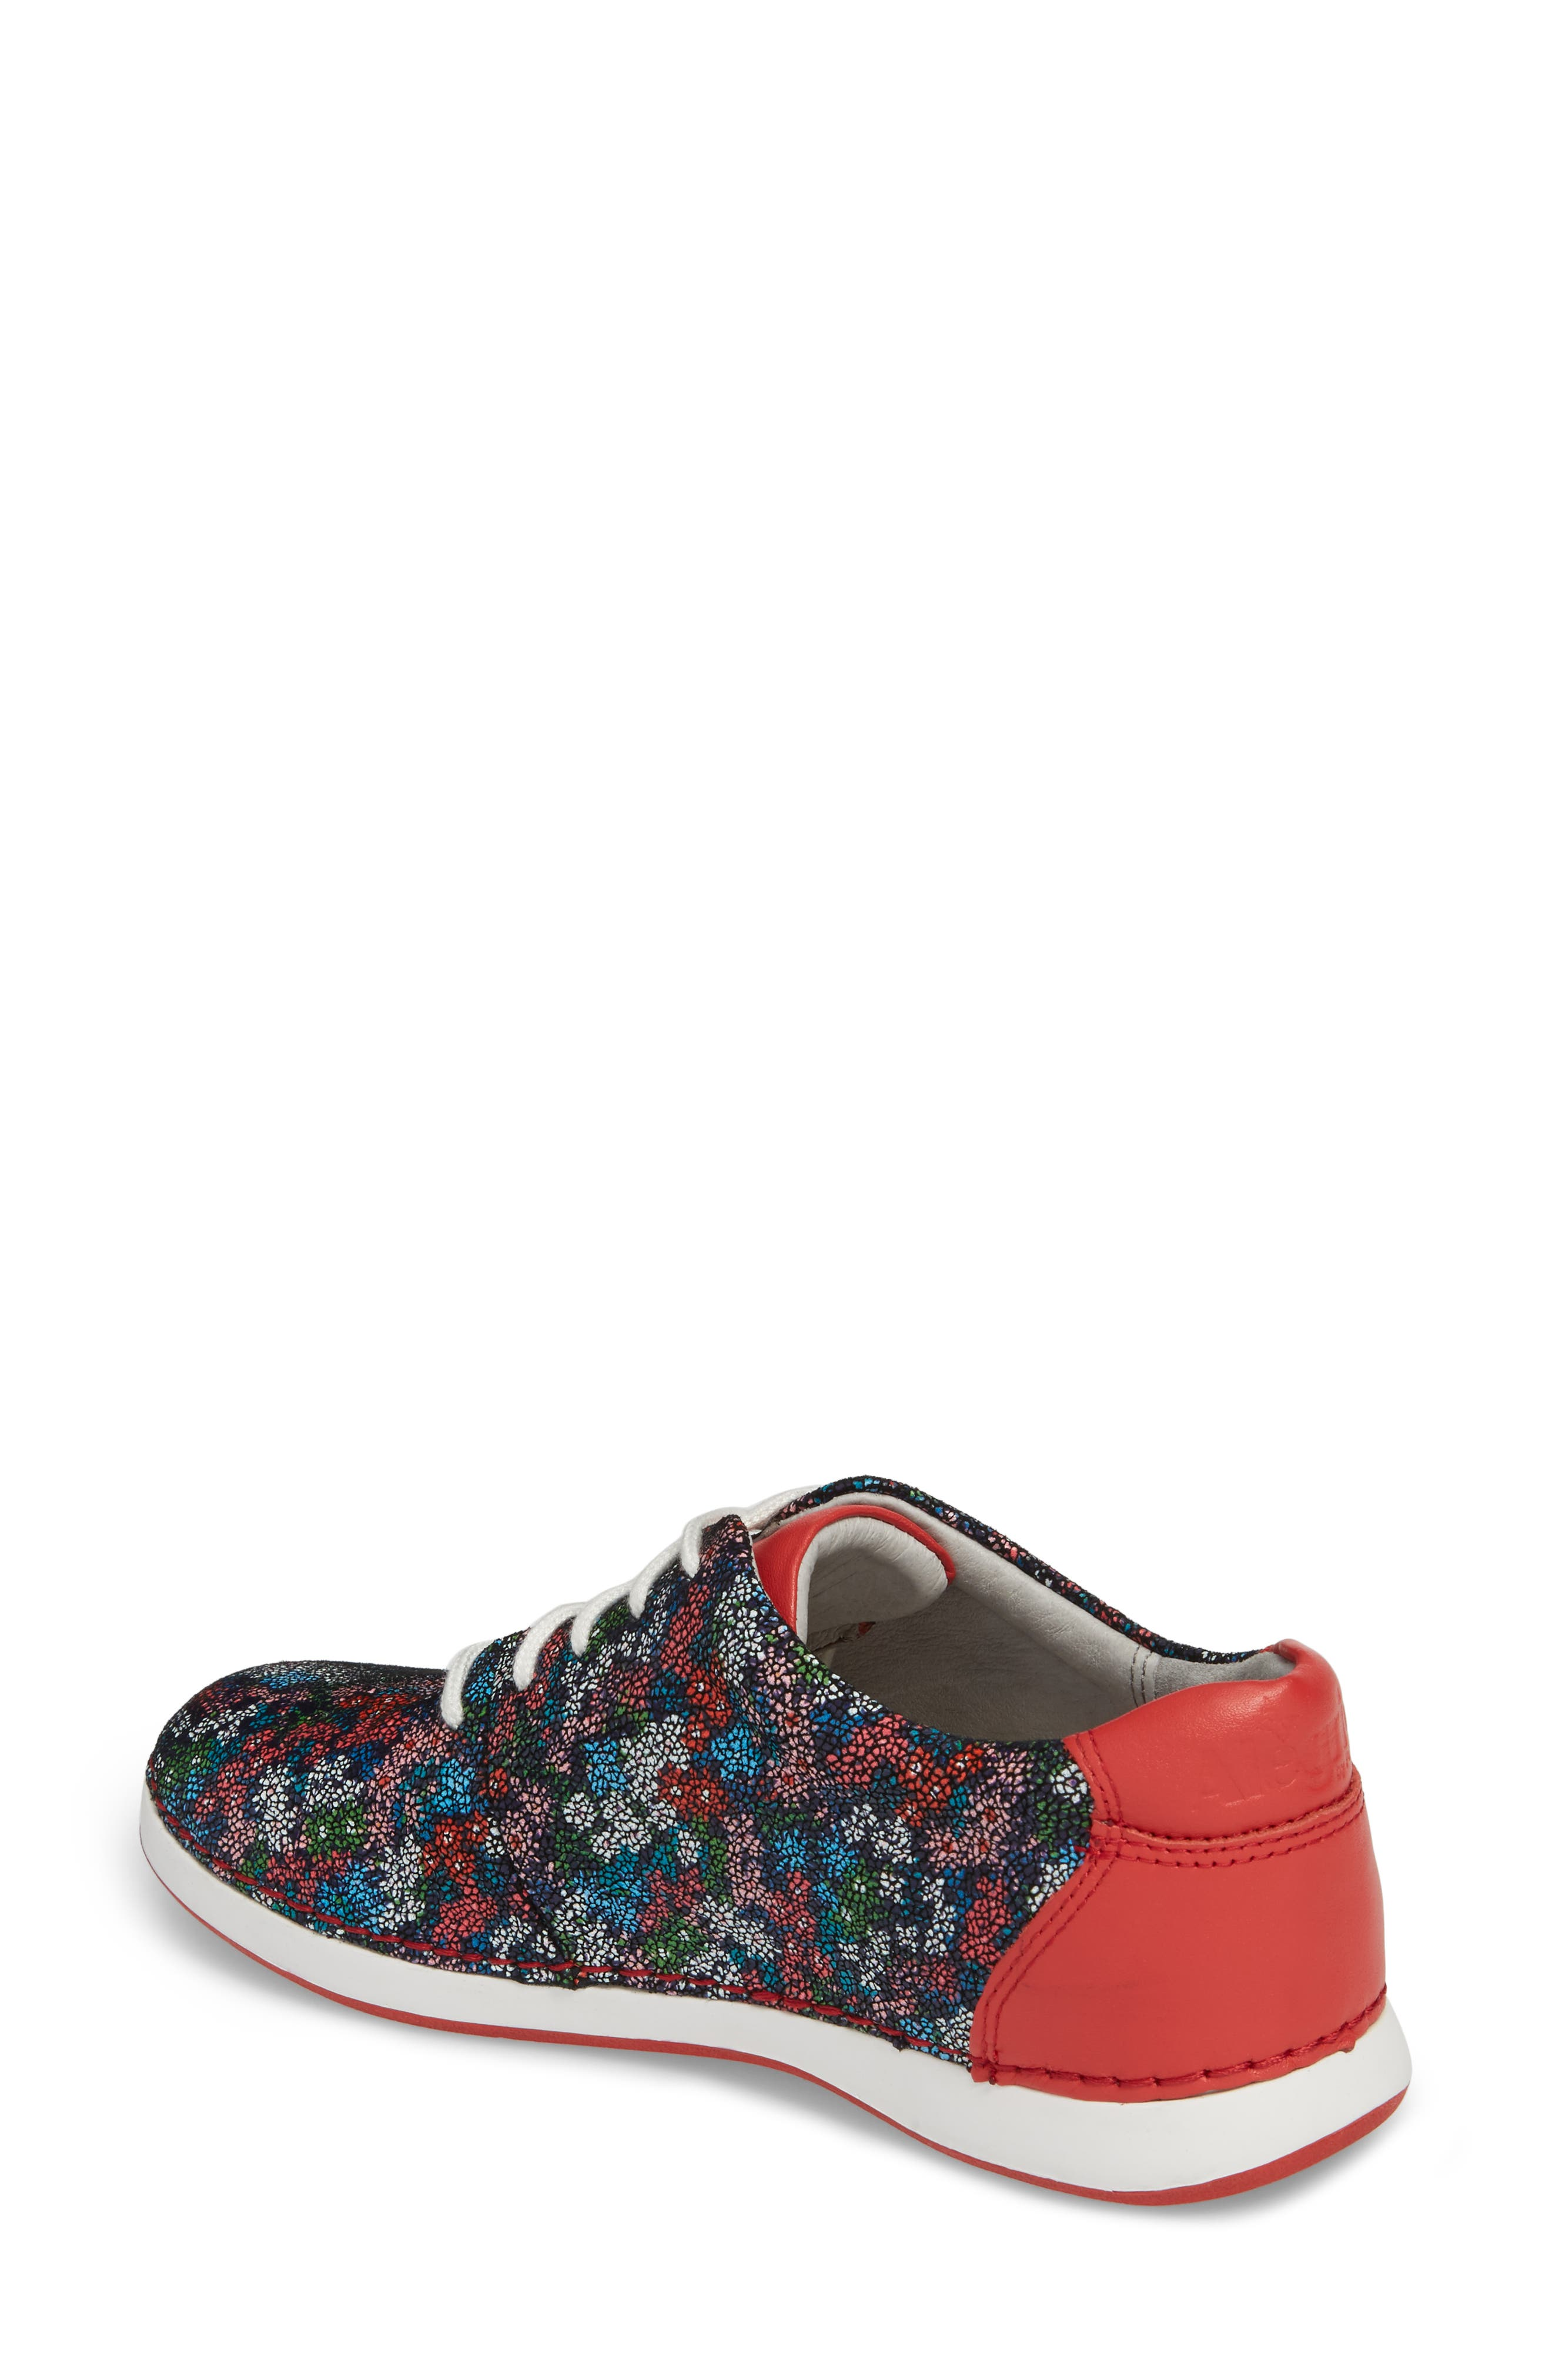 Essence Lace-Up Leather Oxford,                             Alternate thumbnail 2, color,                             Botanncool Leather